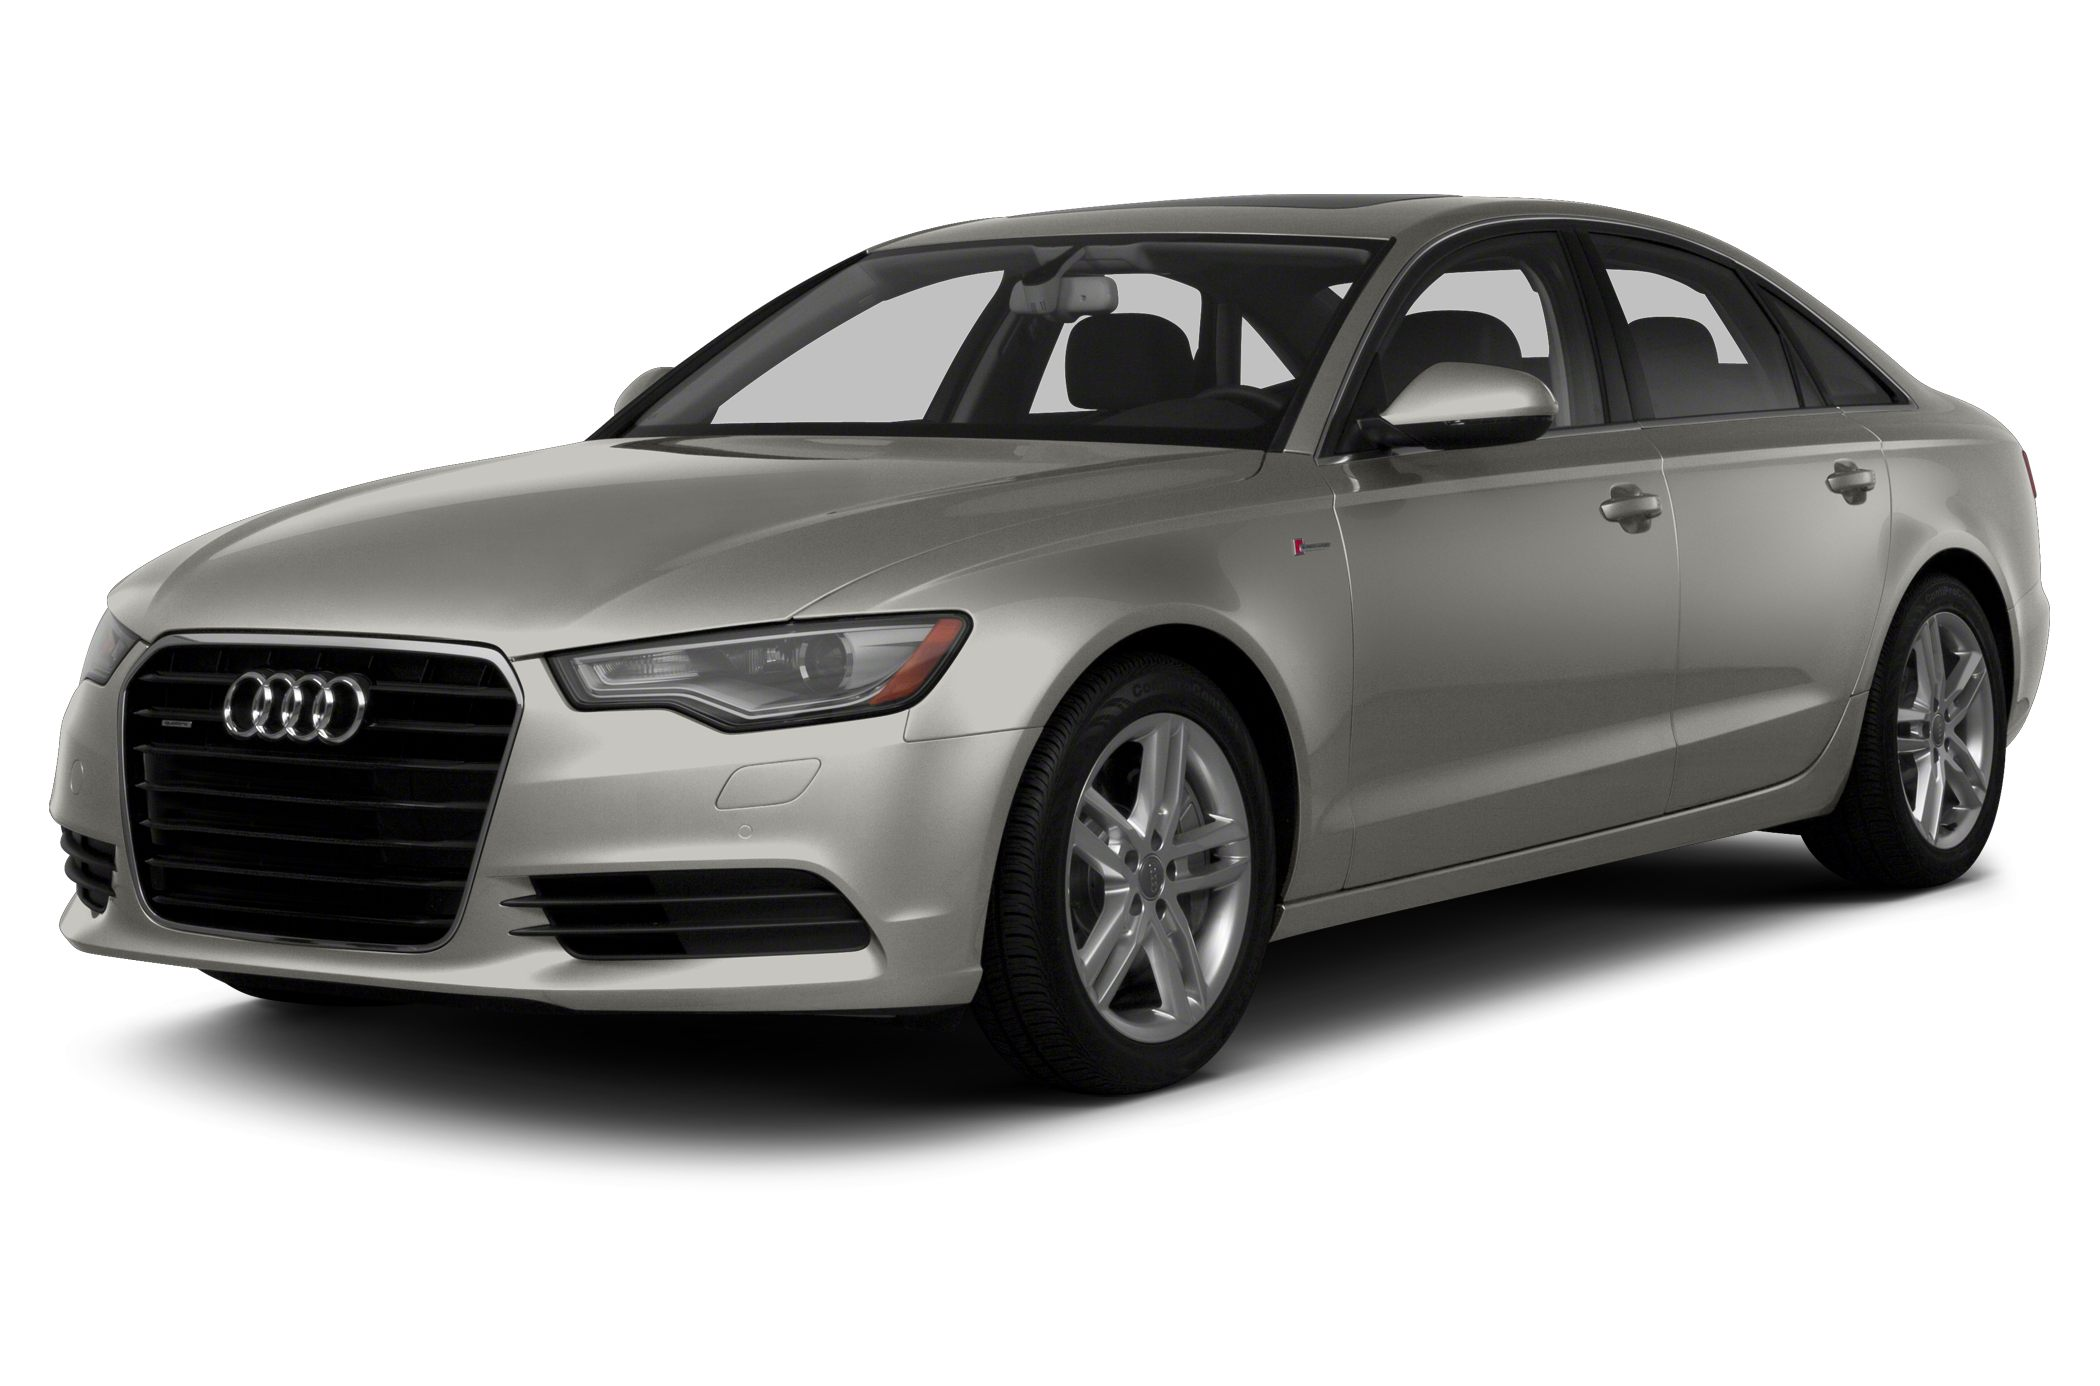 2013 Audi A6 30T quattro Premium Visit Best Auto Group online at bronxbestautocom to see more pi